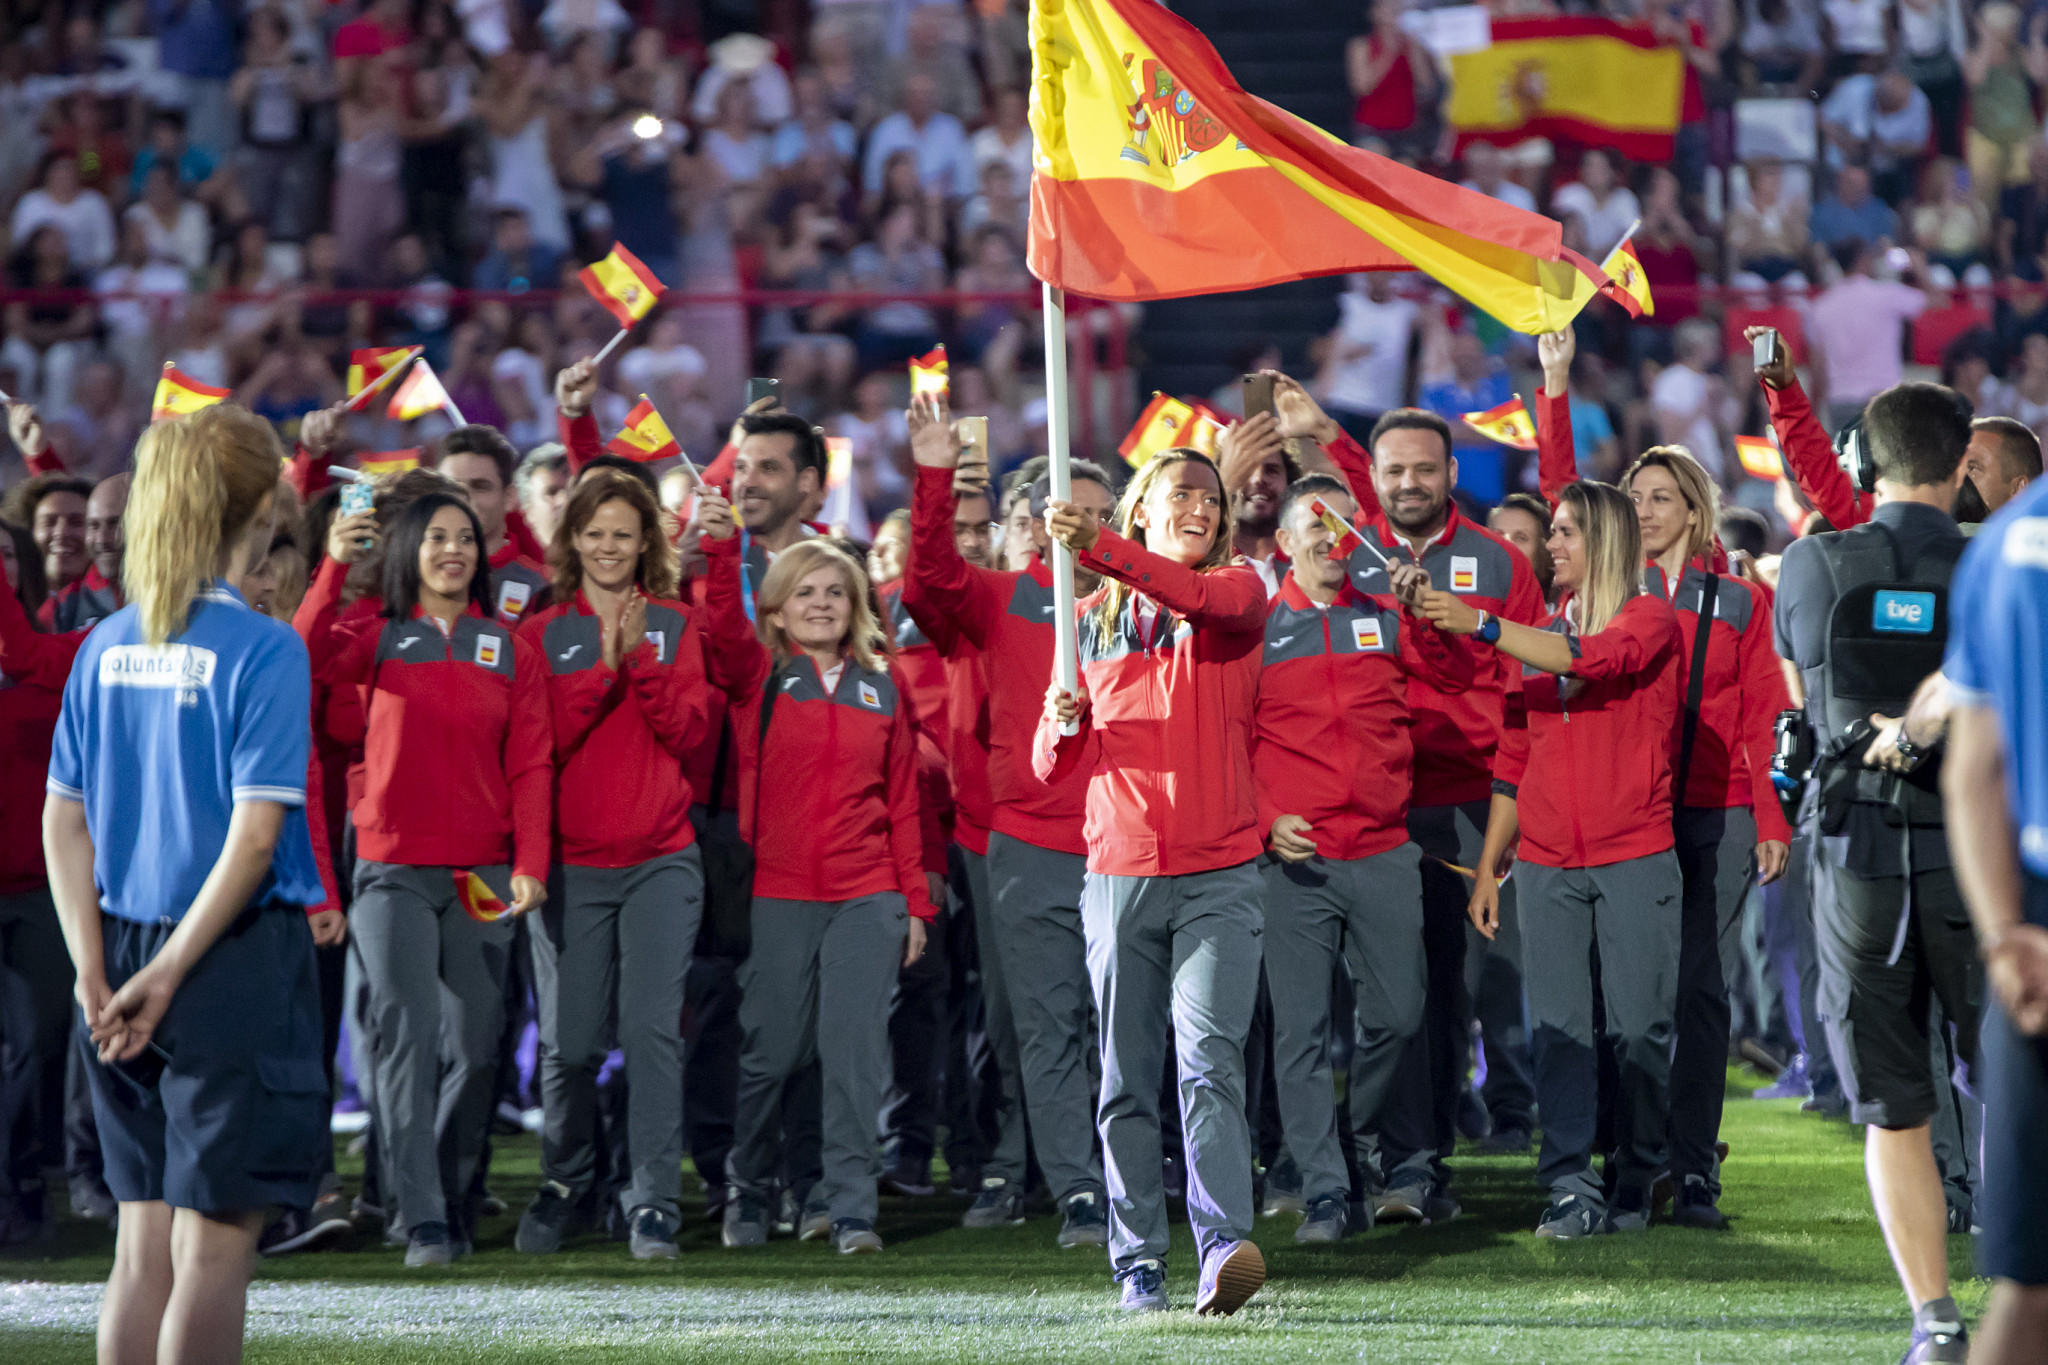 The Spanish team entering the Stadium ©Tarragona 2018